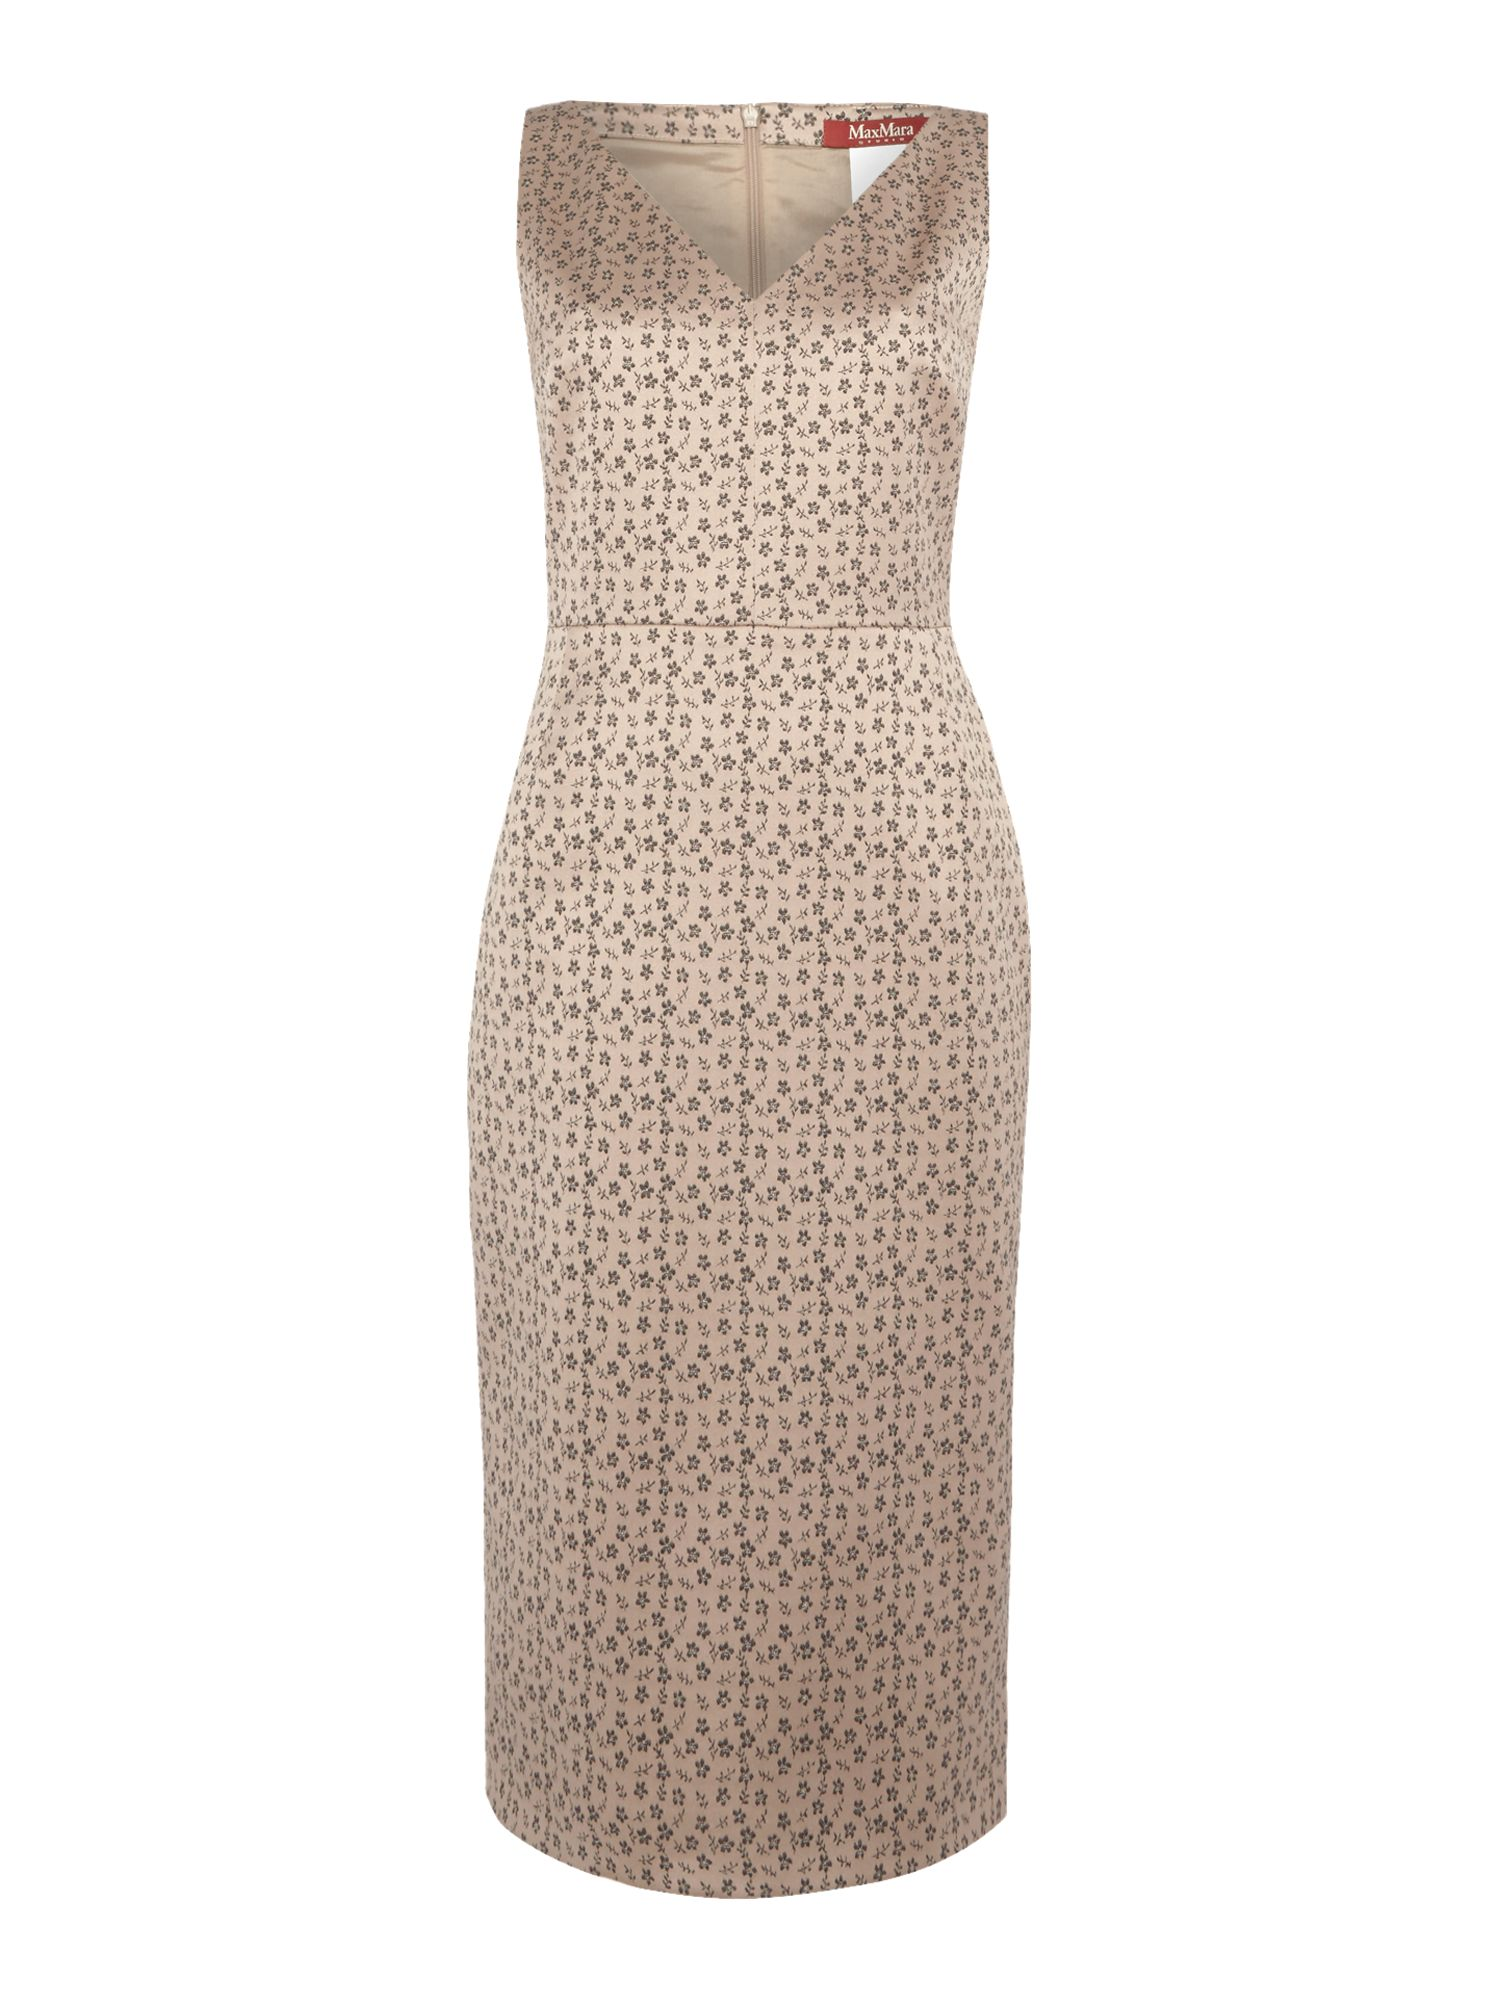 Max Mara Studio EXPLOIT sleeveless micro floral jaquard dress, Nude